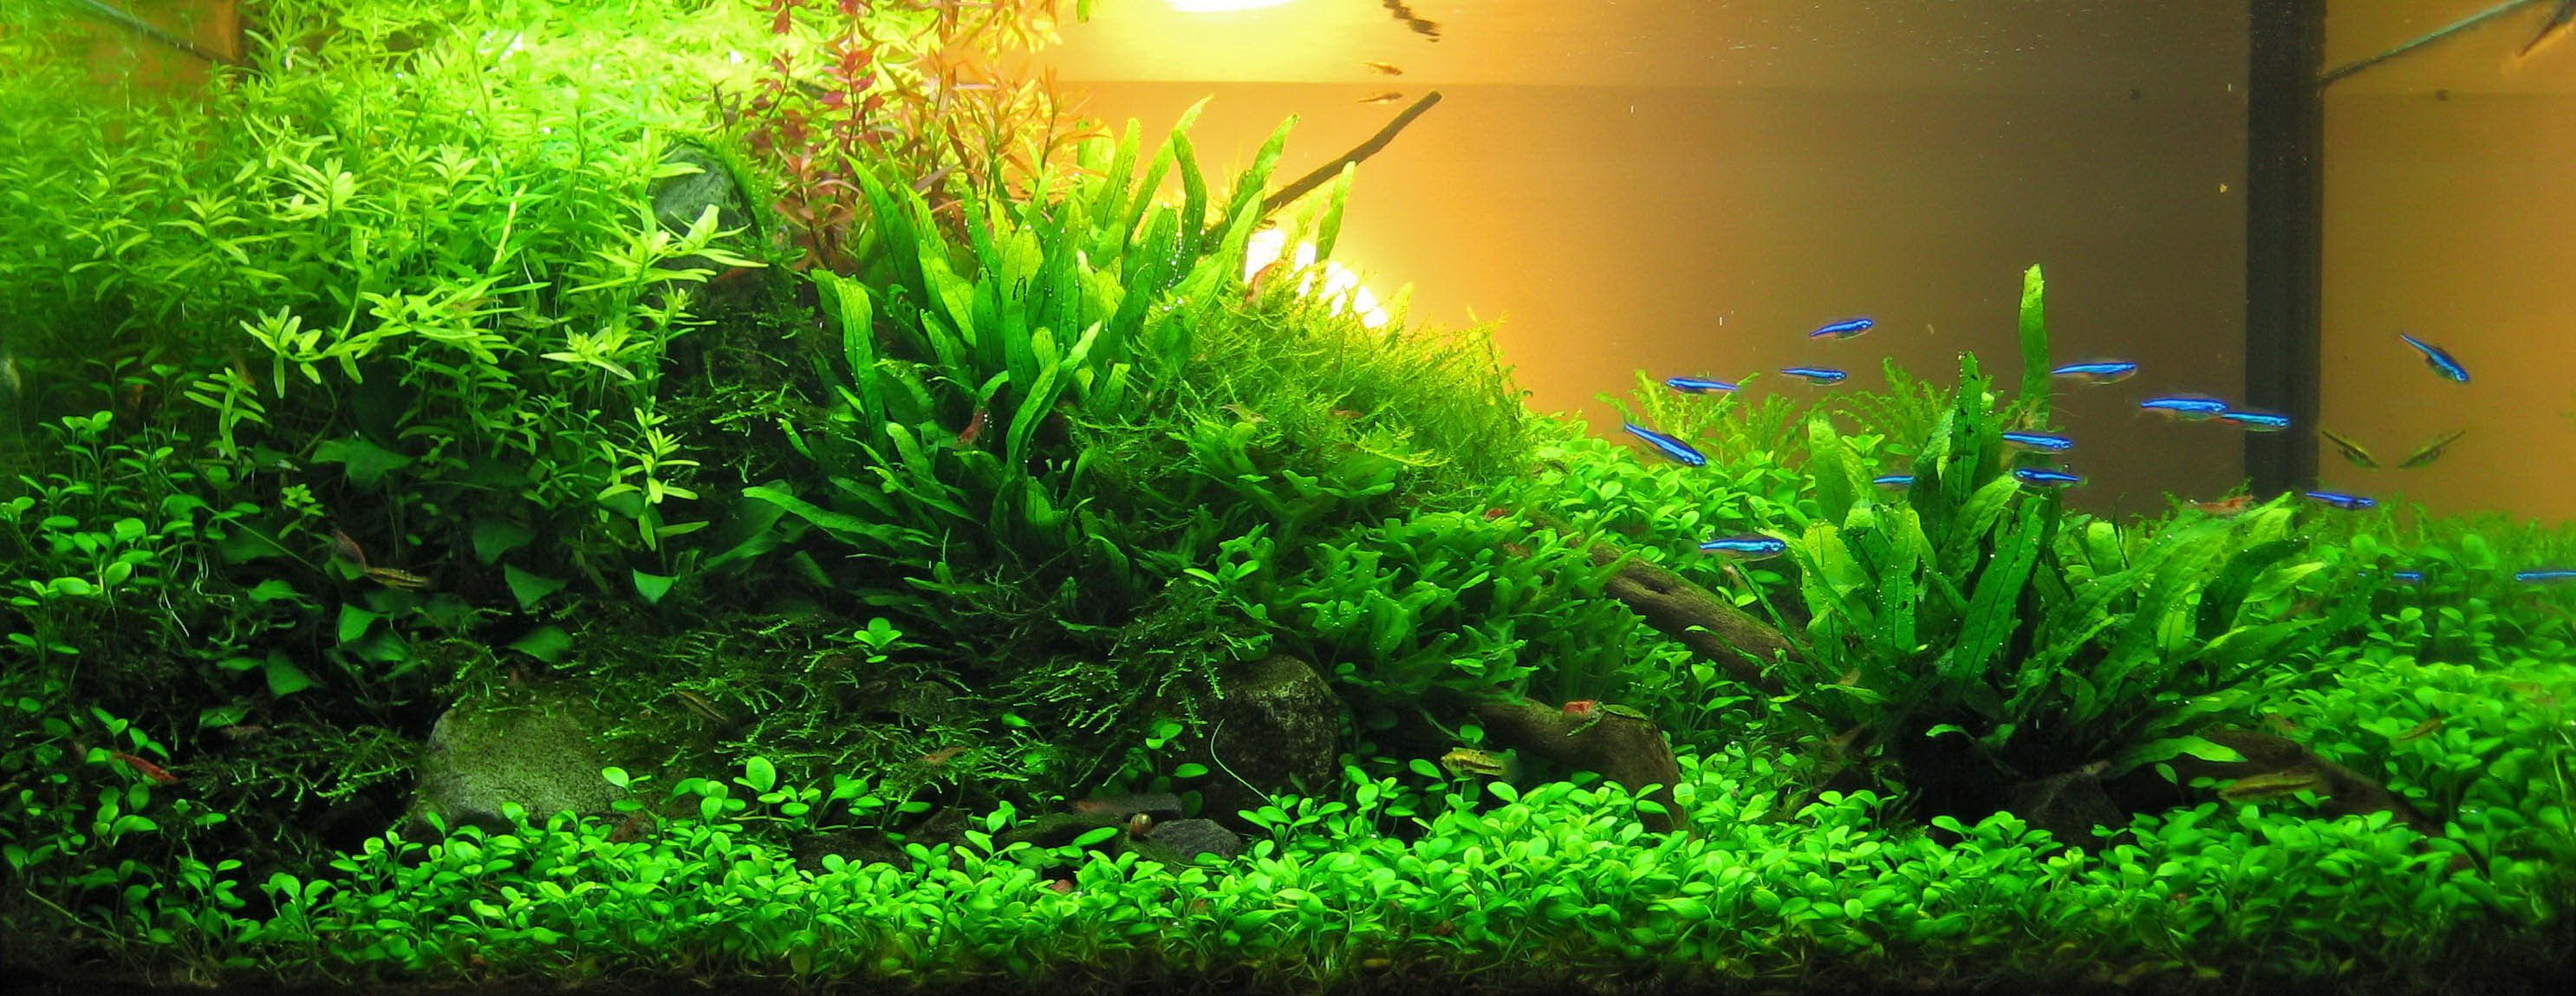 Wonderful Aquascape Aquarium Designs: Simple Aquarium ...